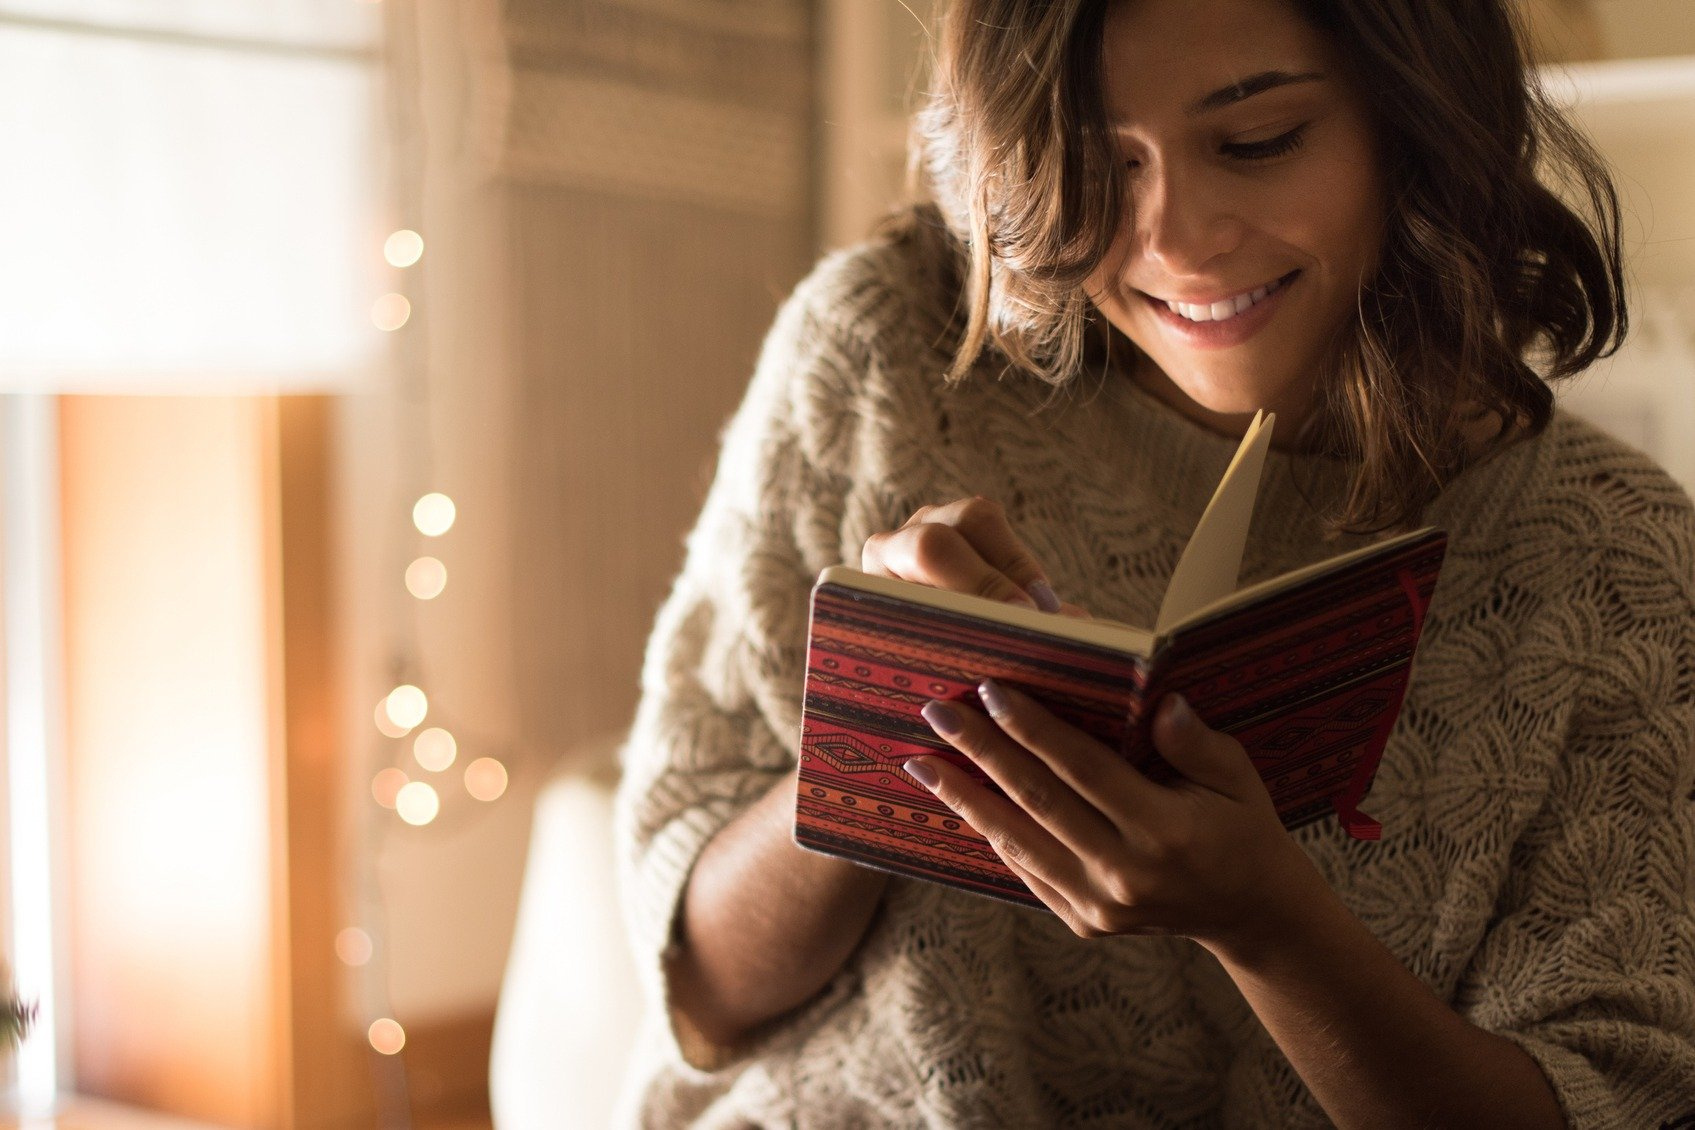 Image Credits: Getty Images / Girl reading